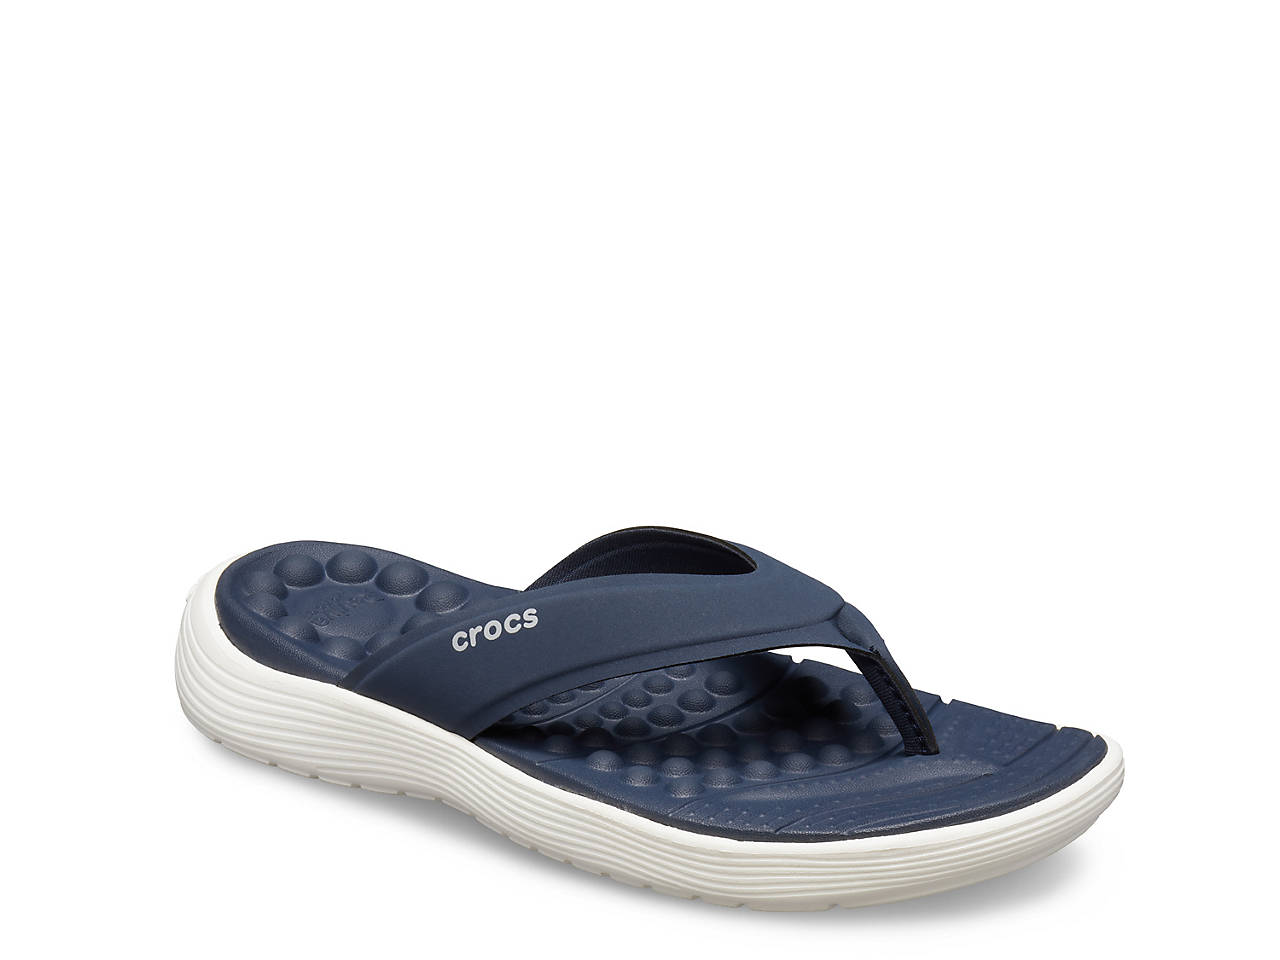 081e0fad65d3 Crocs Reviva Flip Flop Women s Shoes